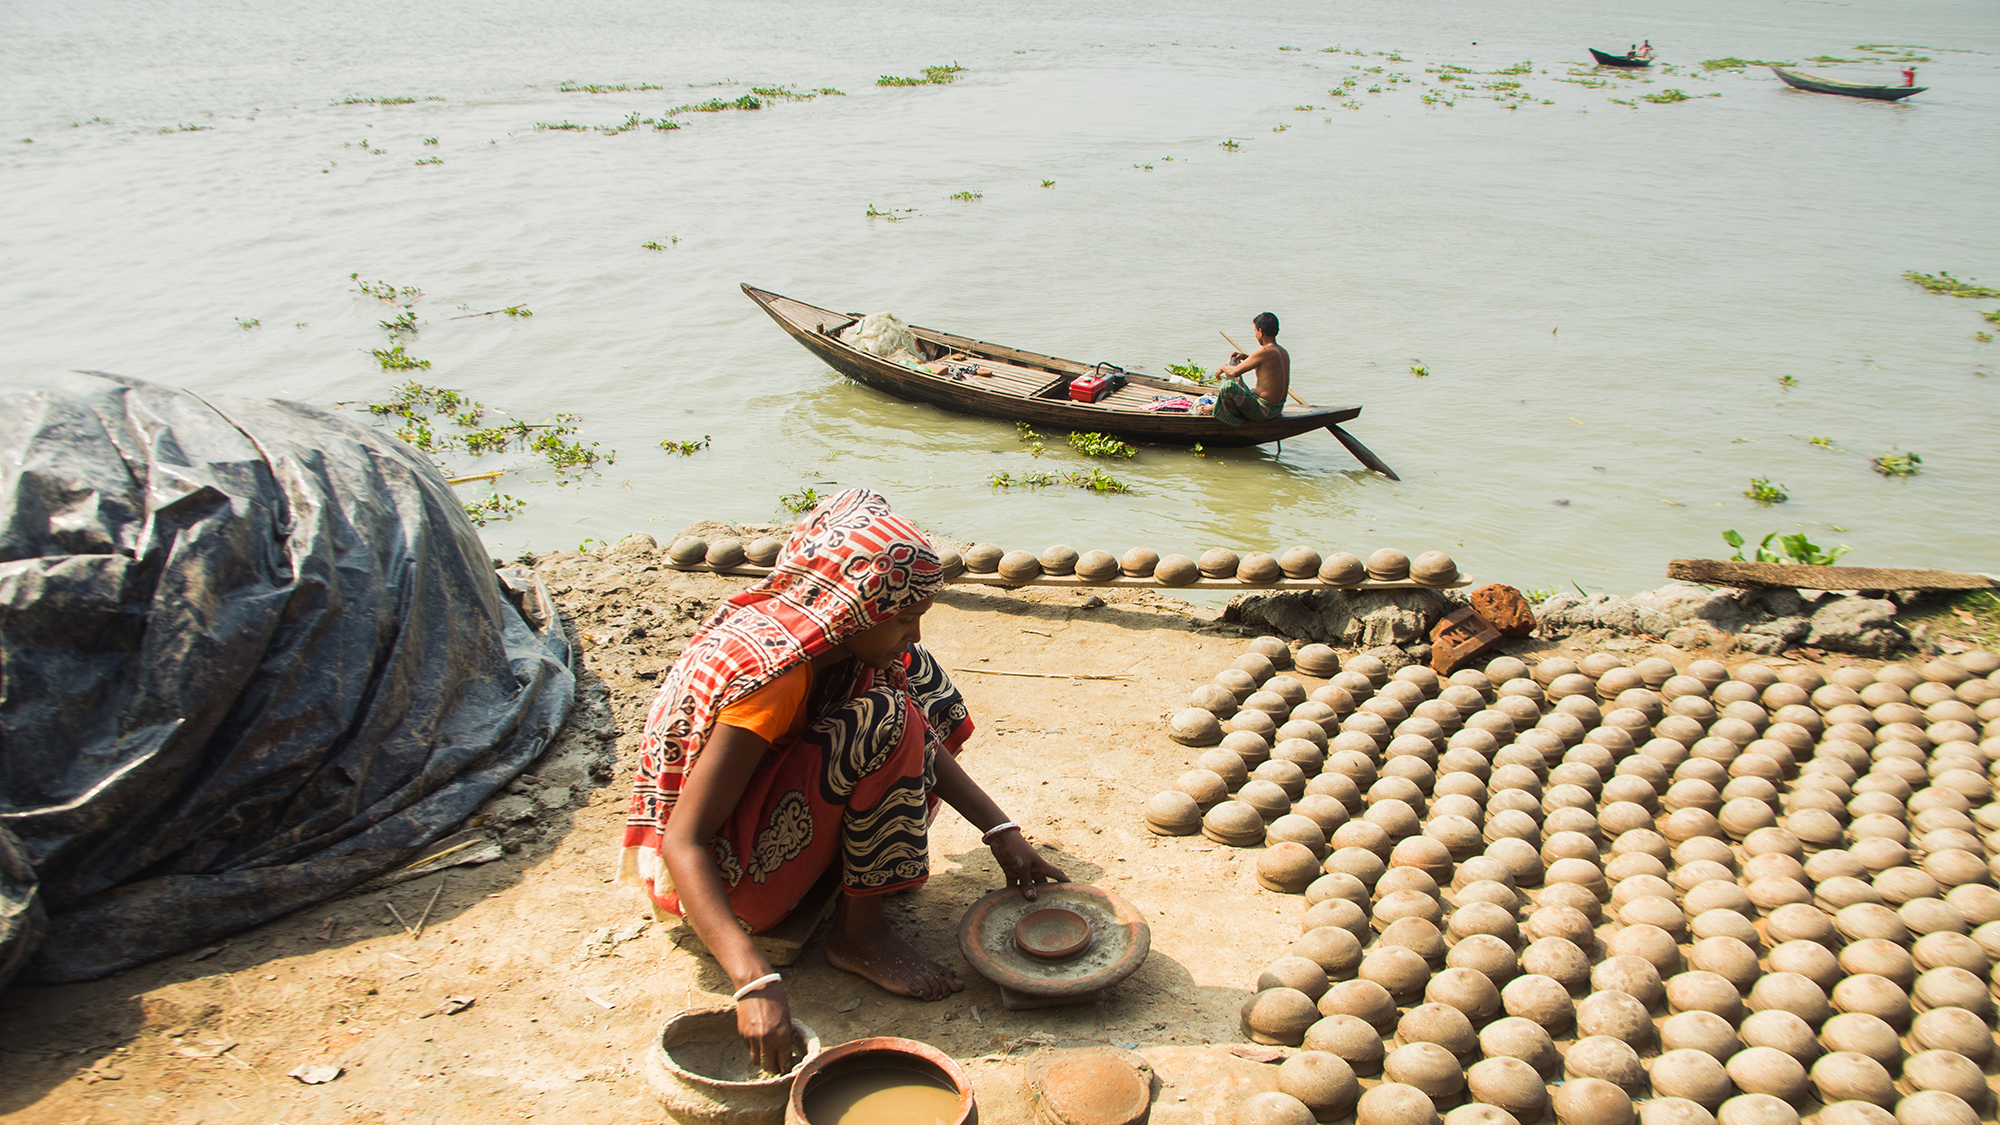 Sonakur is a pottery village in southwestern Bangladesh where people live in huts and make pots all day long.